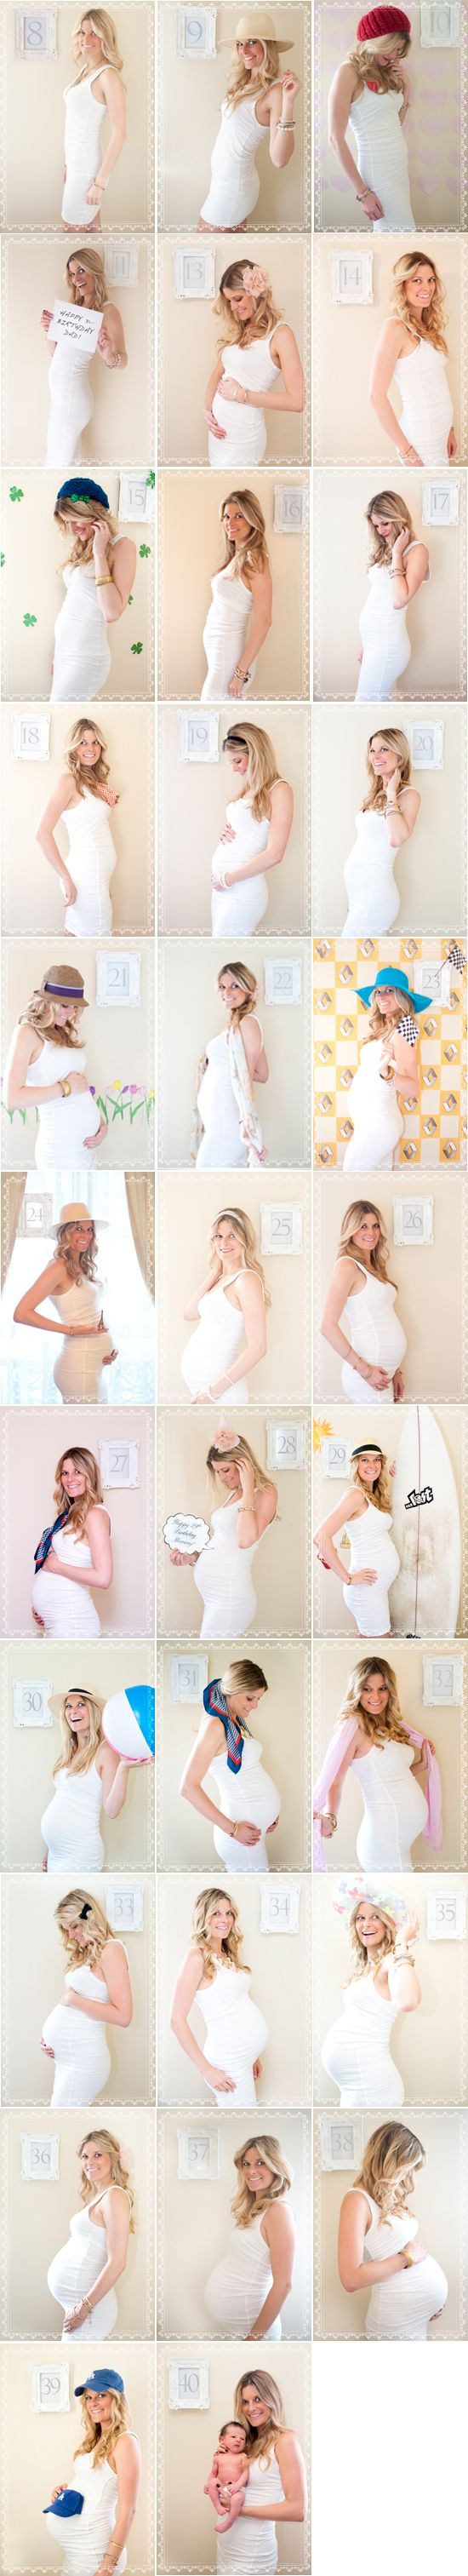 Adorable!  This woman took a photo of herself each week of her pregnancy in the same outfit to document the changes.